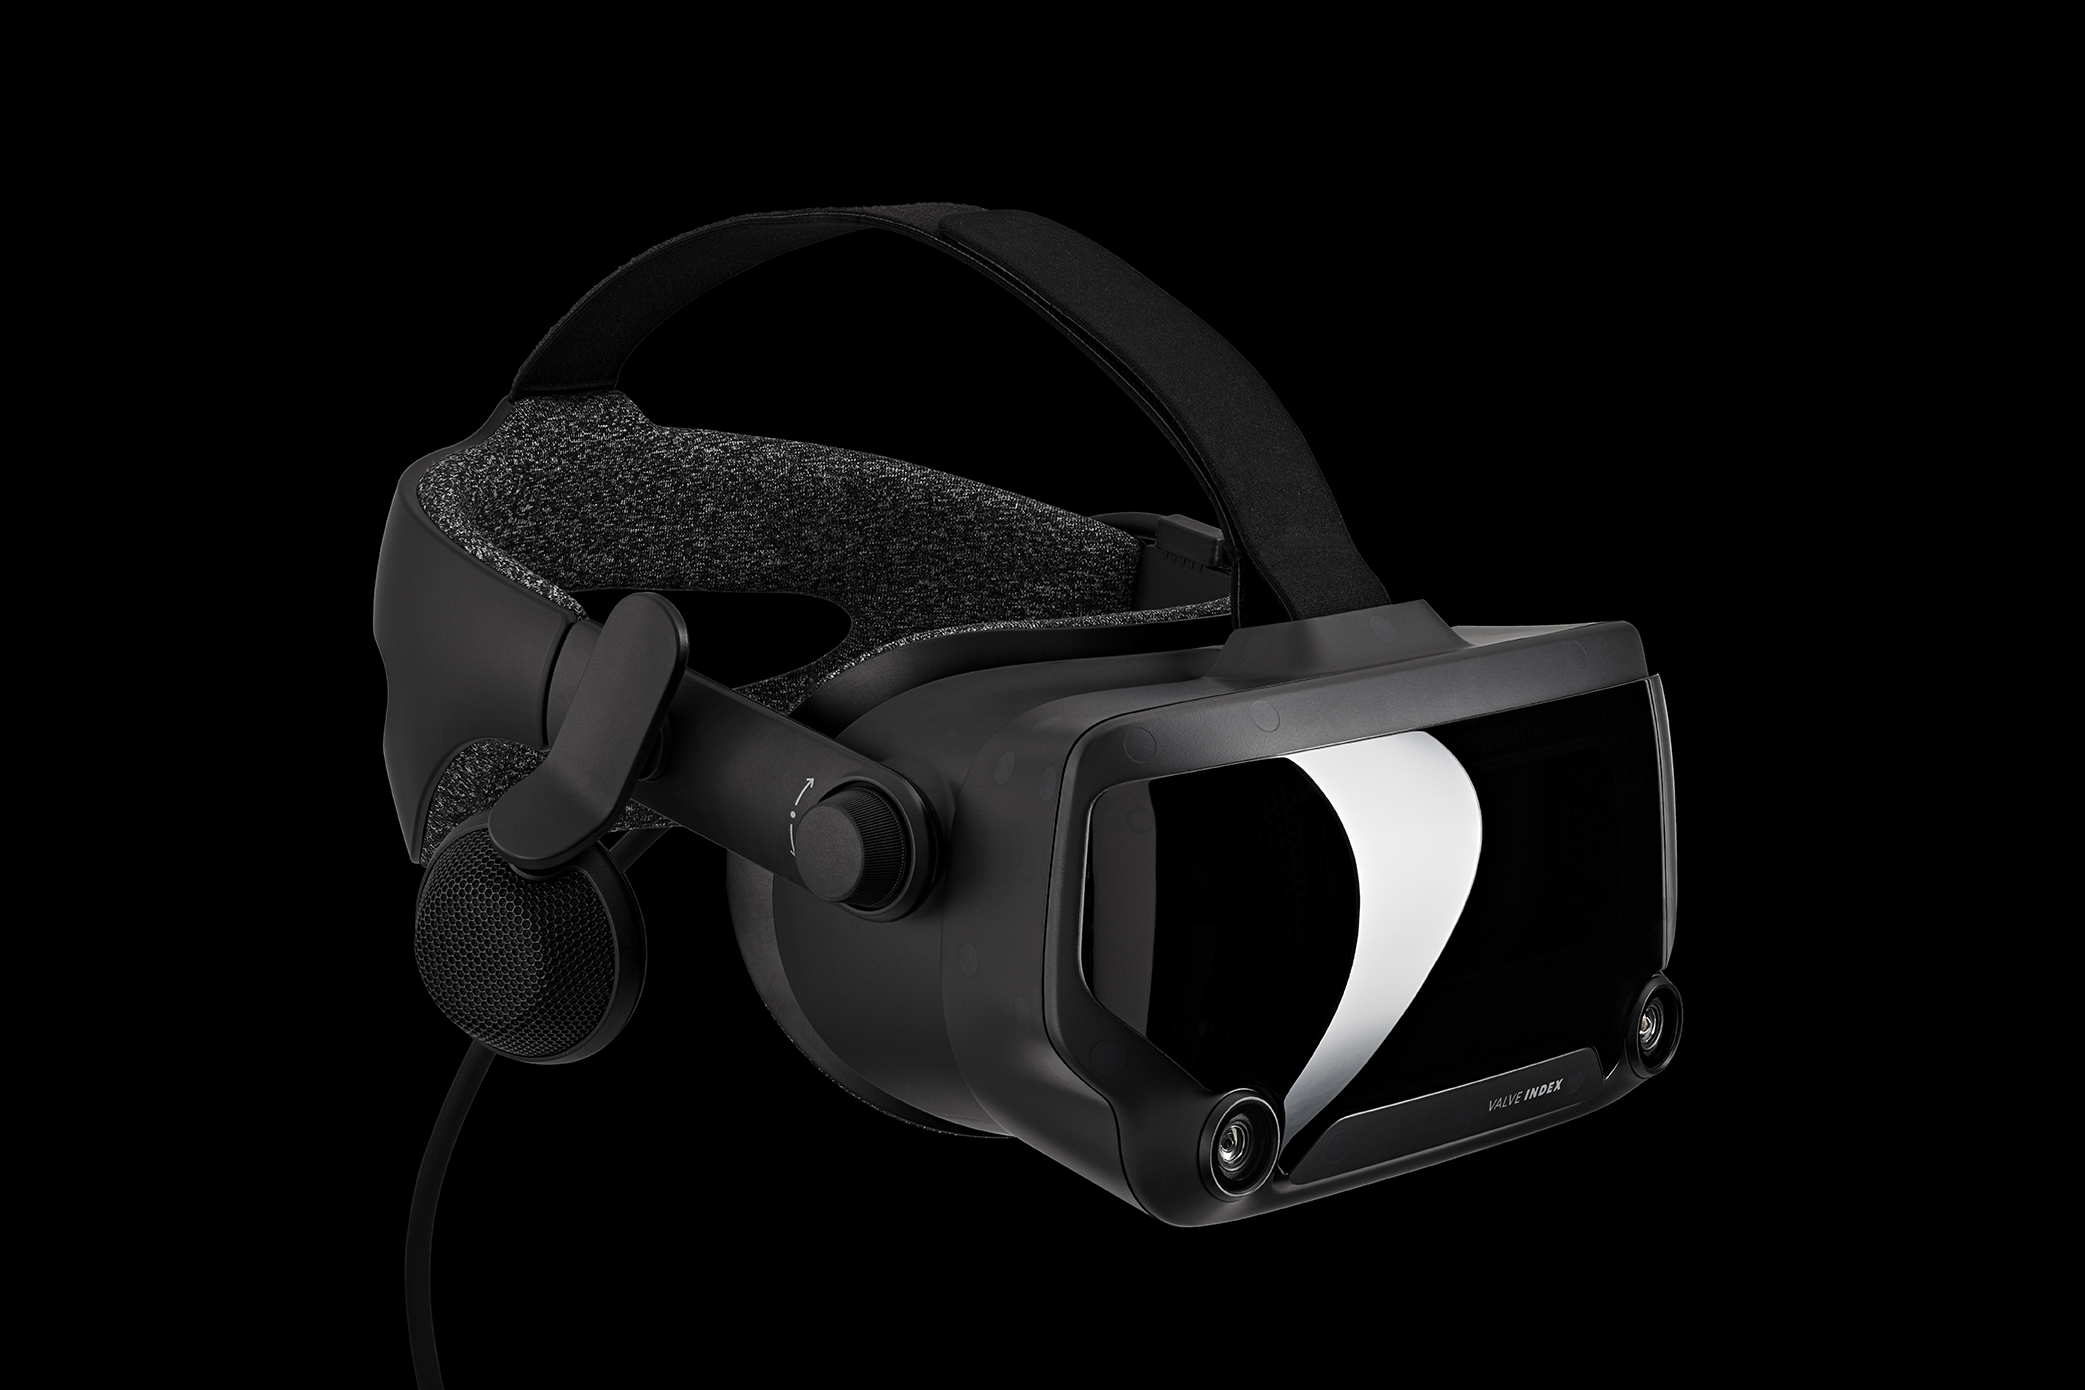 Valve Index HMD Headset Angle Speakers Side